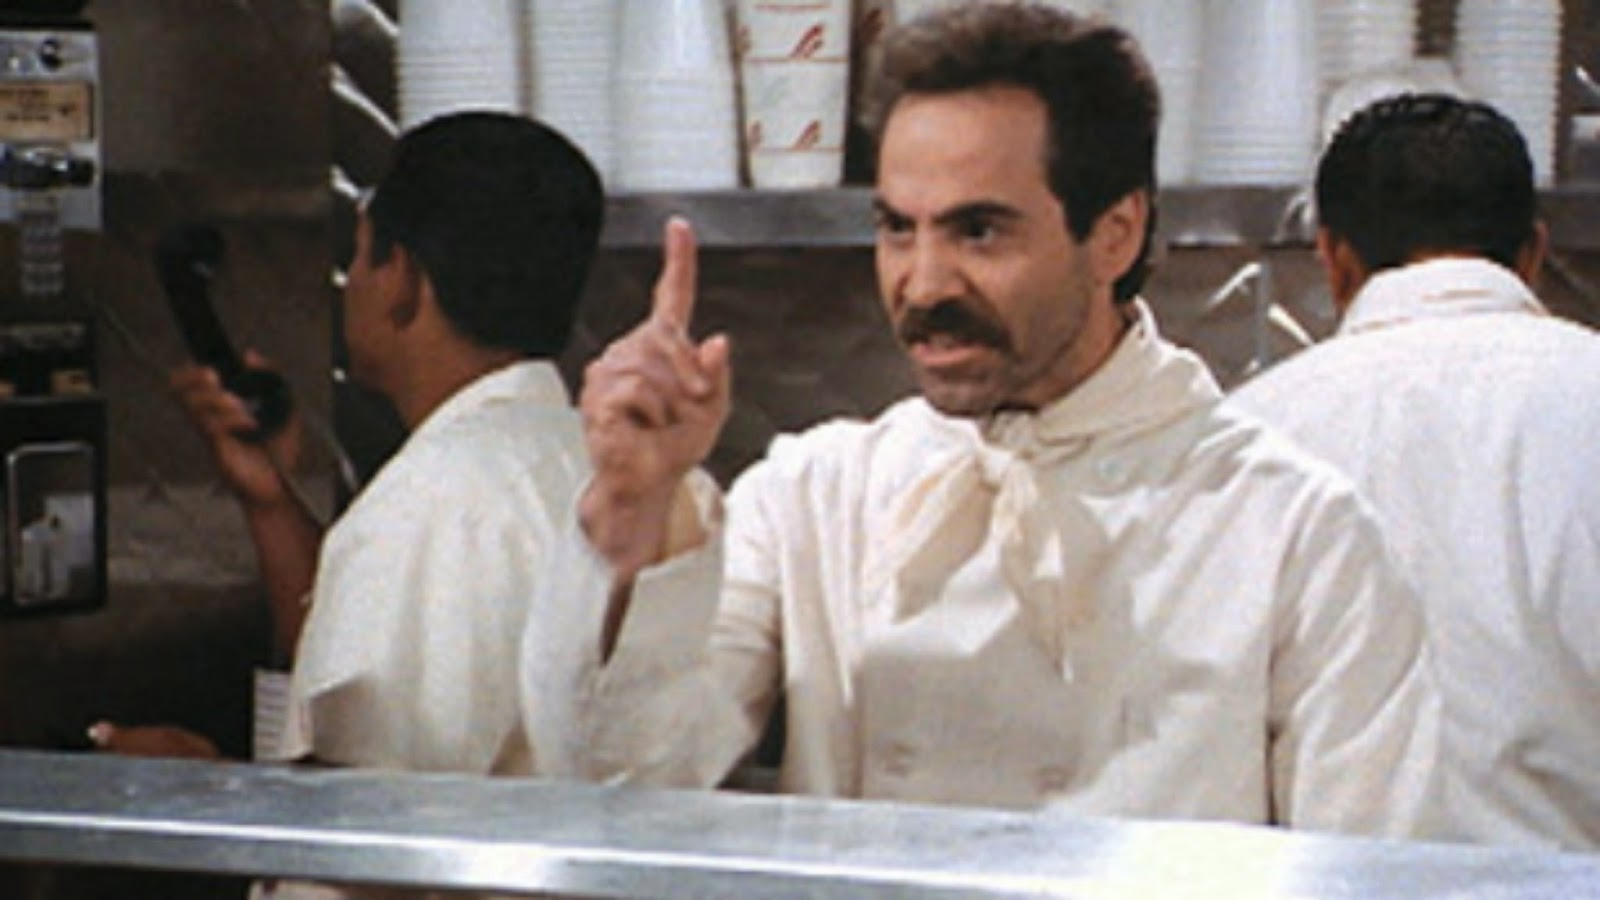 The Soup Nazi is Alive and Well. Bad Plan